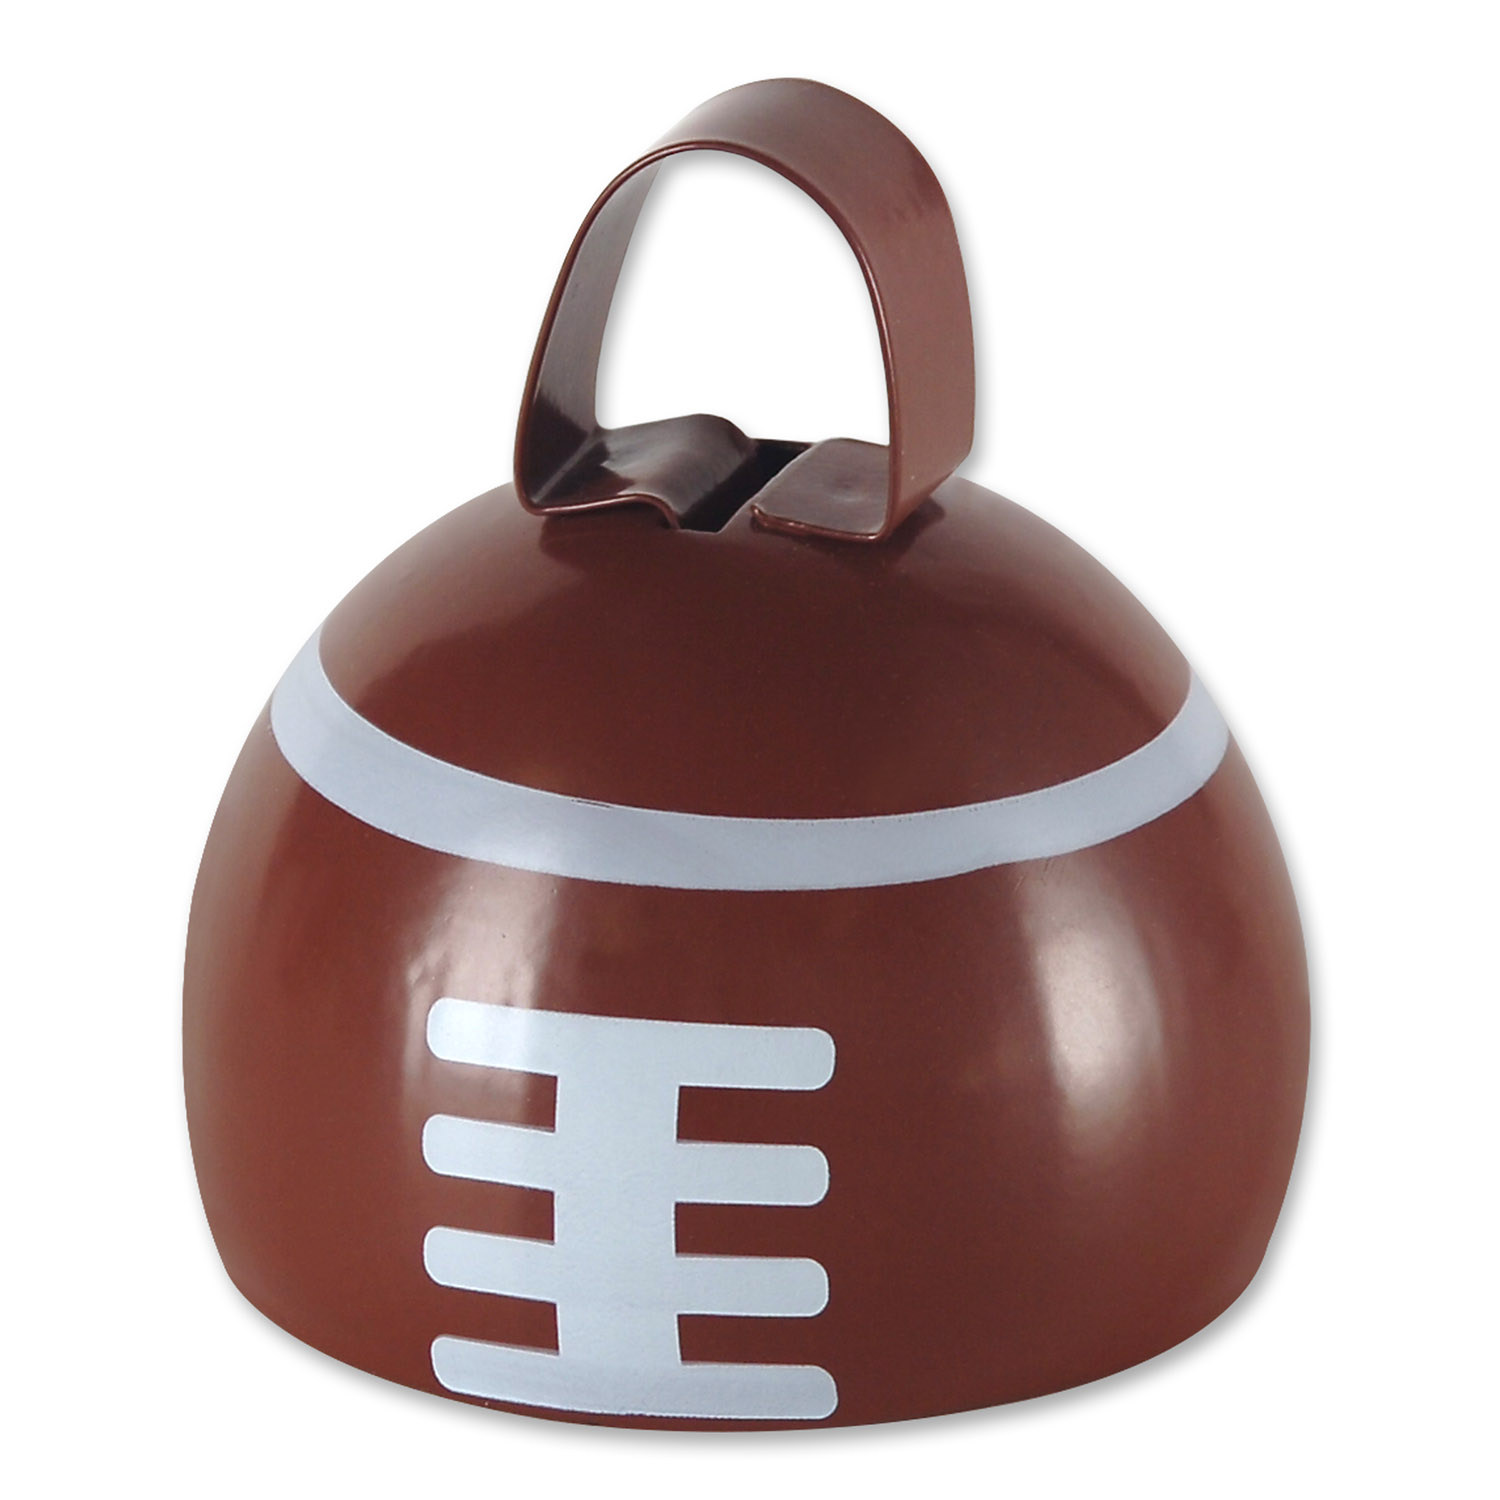 Football Cowbell (Pack of 12) Game Day, Football Cowbells, Cheap Cowbells, Inexpensive noisemakers, Wholesale party supplies, Brown Cowbell, Cheap game day accessories, Football centerpieces